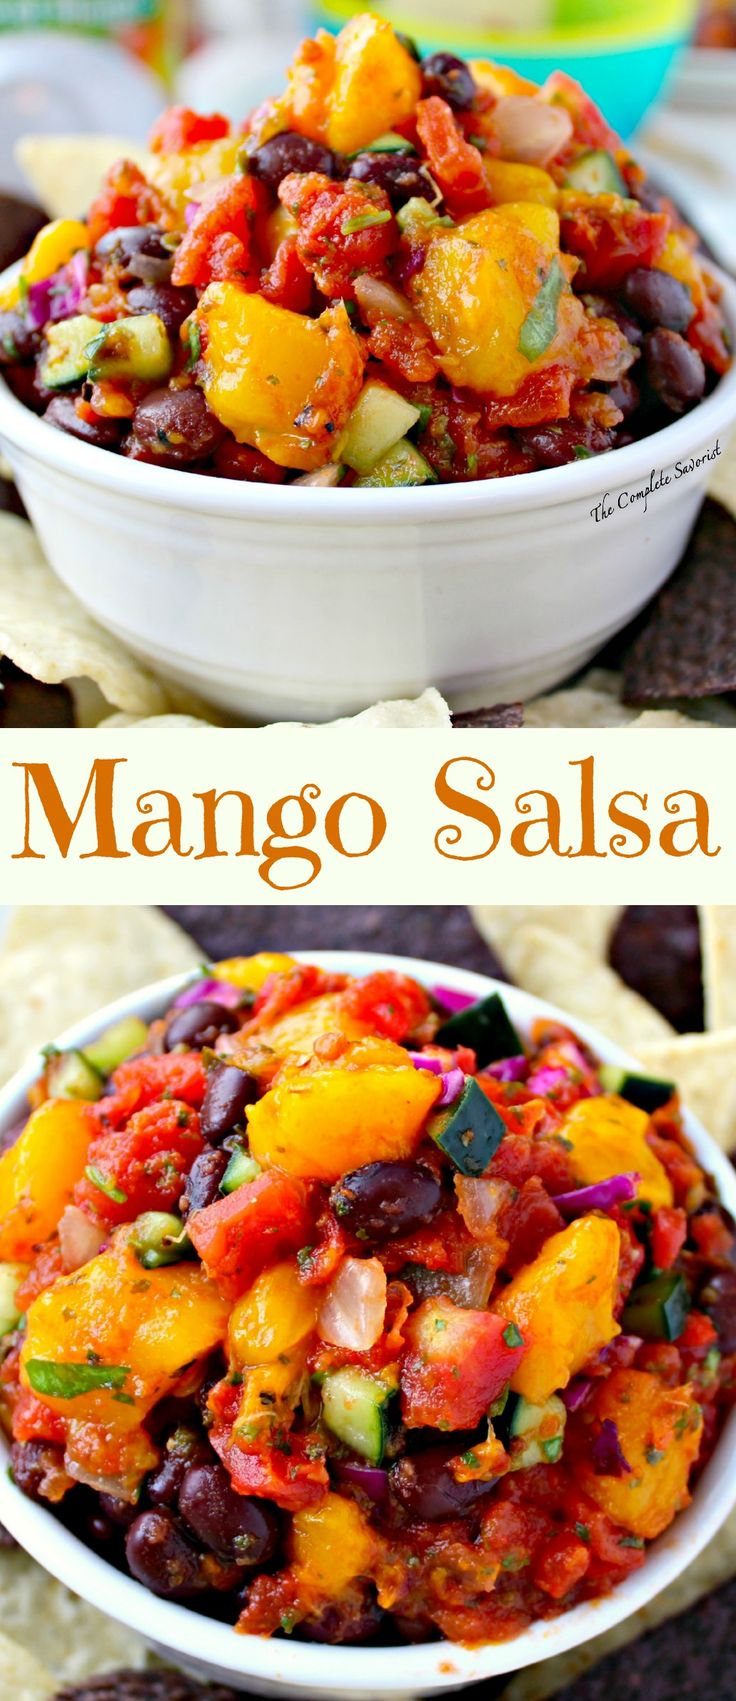 Quick Mango Salsa ~ The Complete Savorist Mango Salsa is perfect for any gathering and is easy to make. #makemangosalsa #PMedia #ad @Del Monte Brand